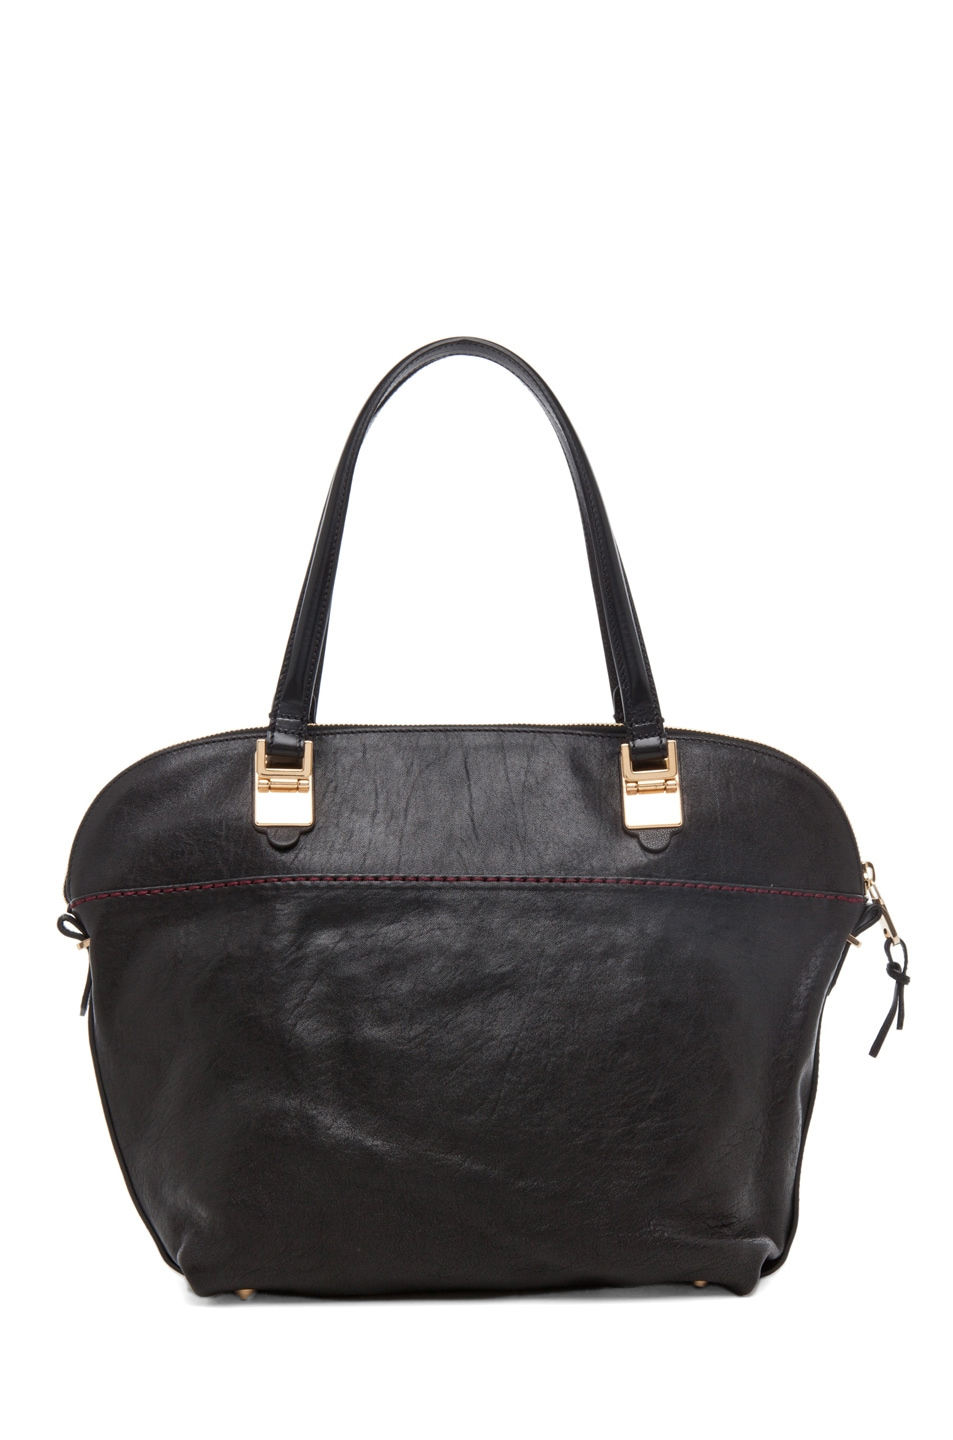 Image 2 of Chloe Large Angie Shoulder Bag in Black